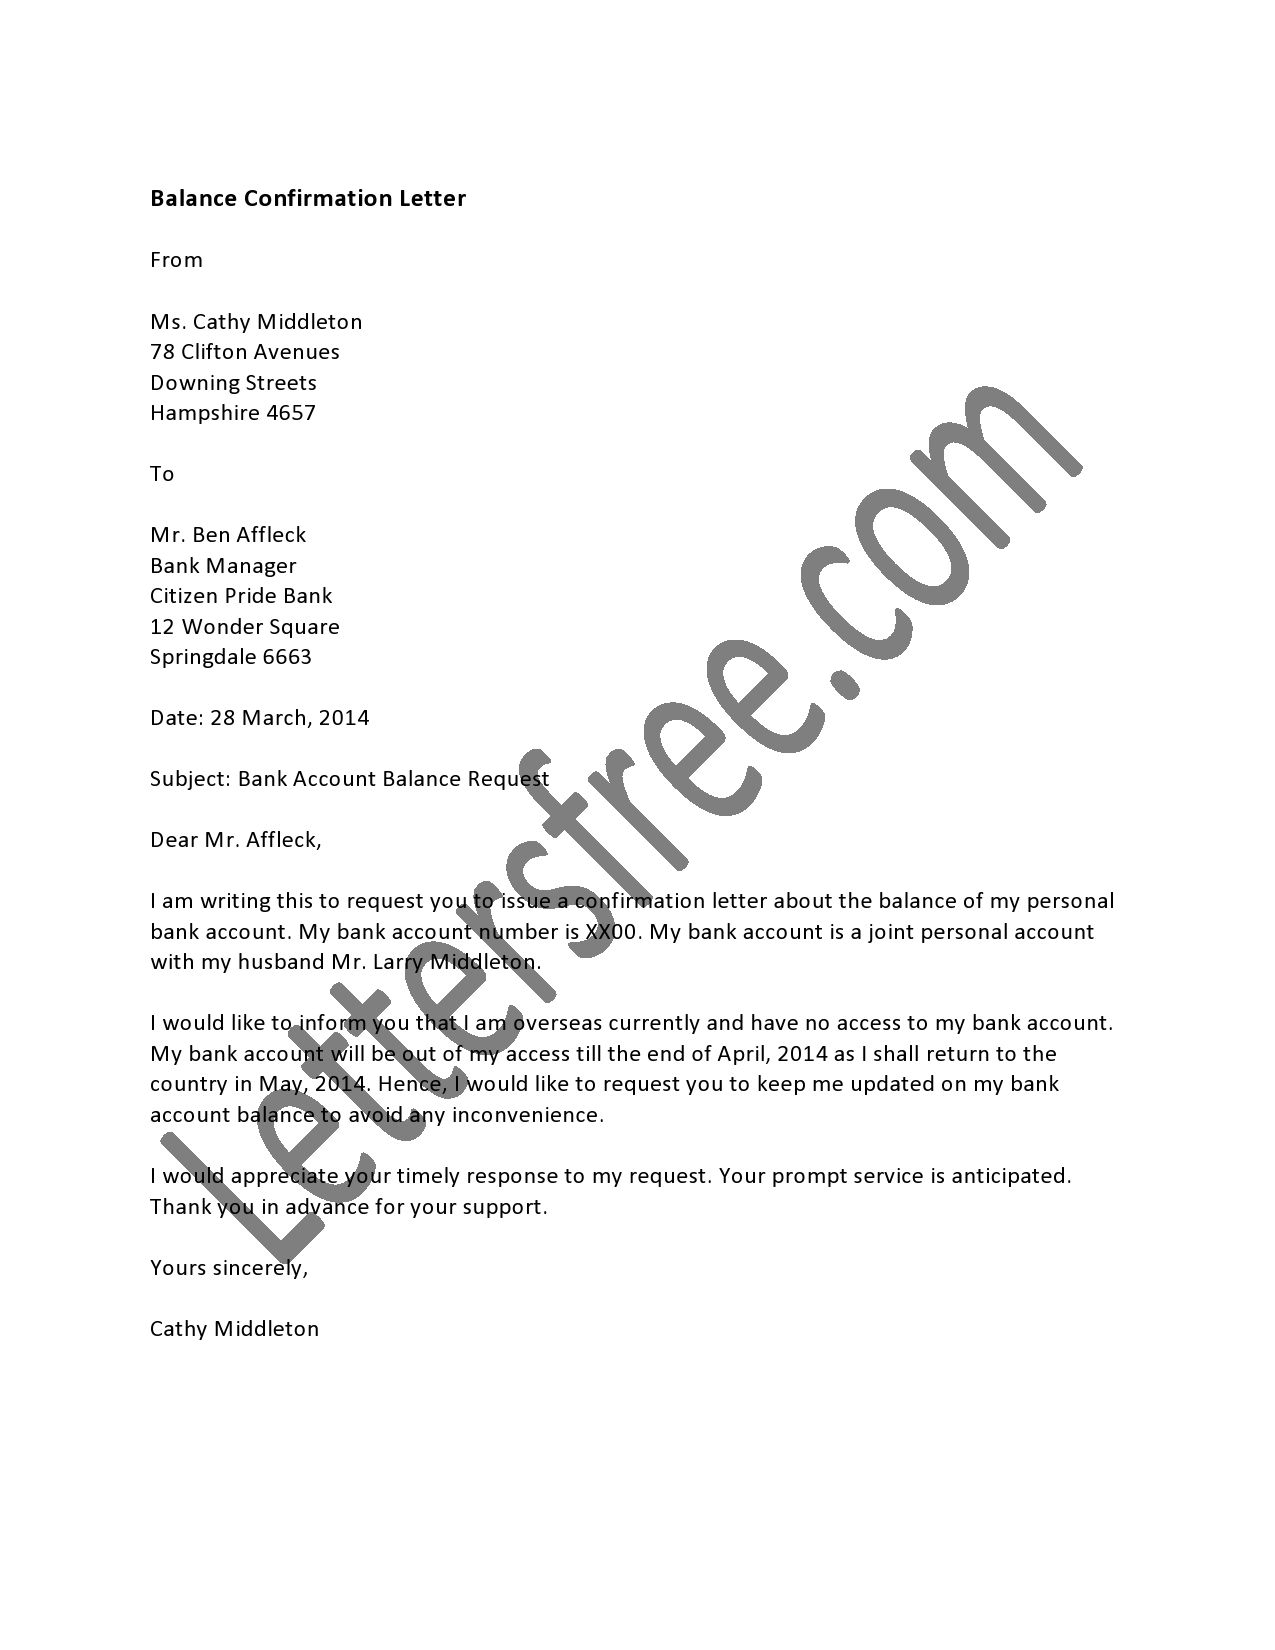 Balance confirmation letter format for the auditors and annual letter official auditors audits balance letters audit confirmation sample bank account verification certification hsbc for spiritdancerdesigns Gallery